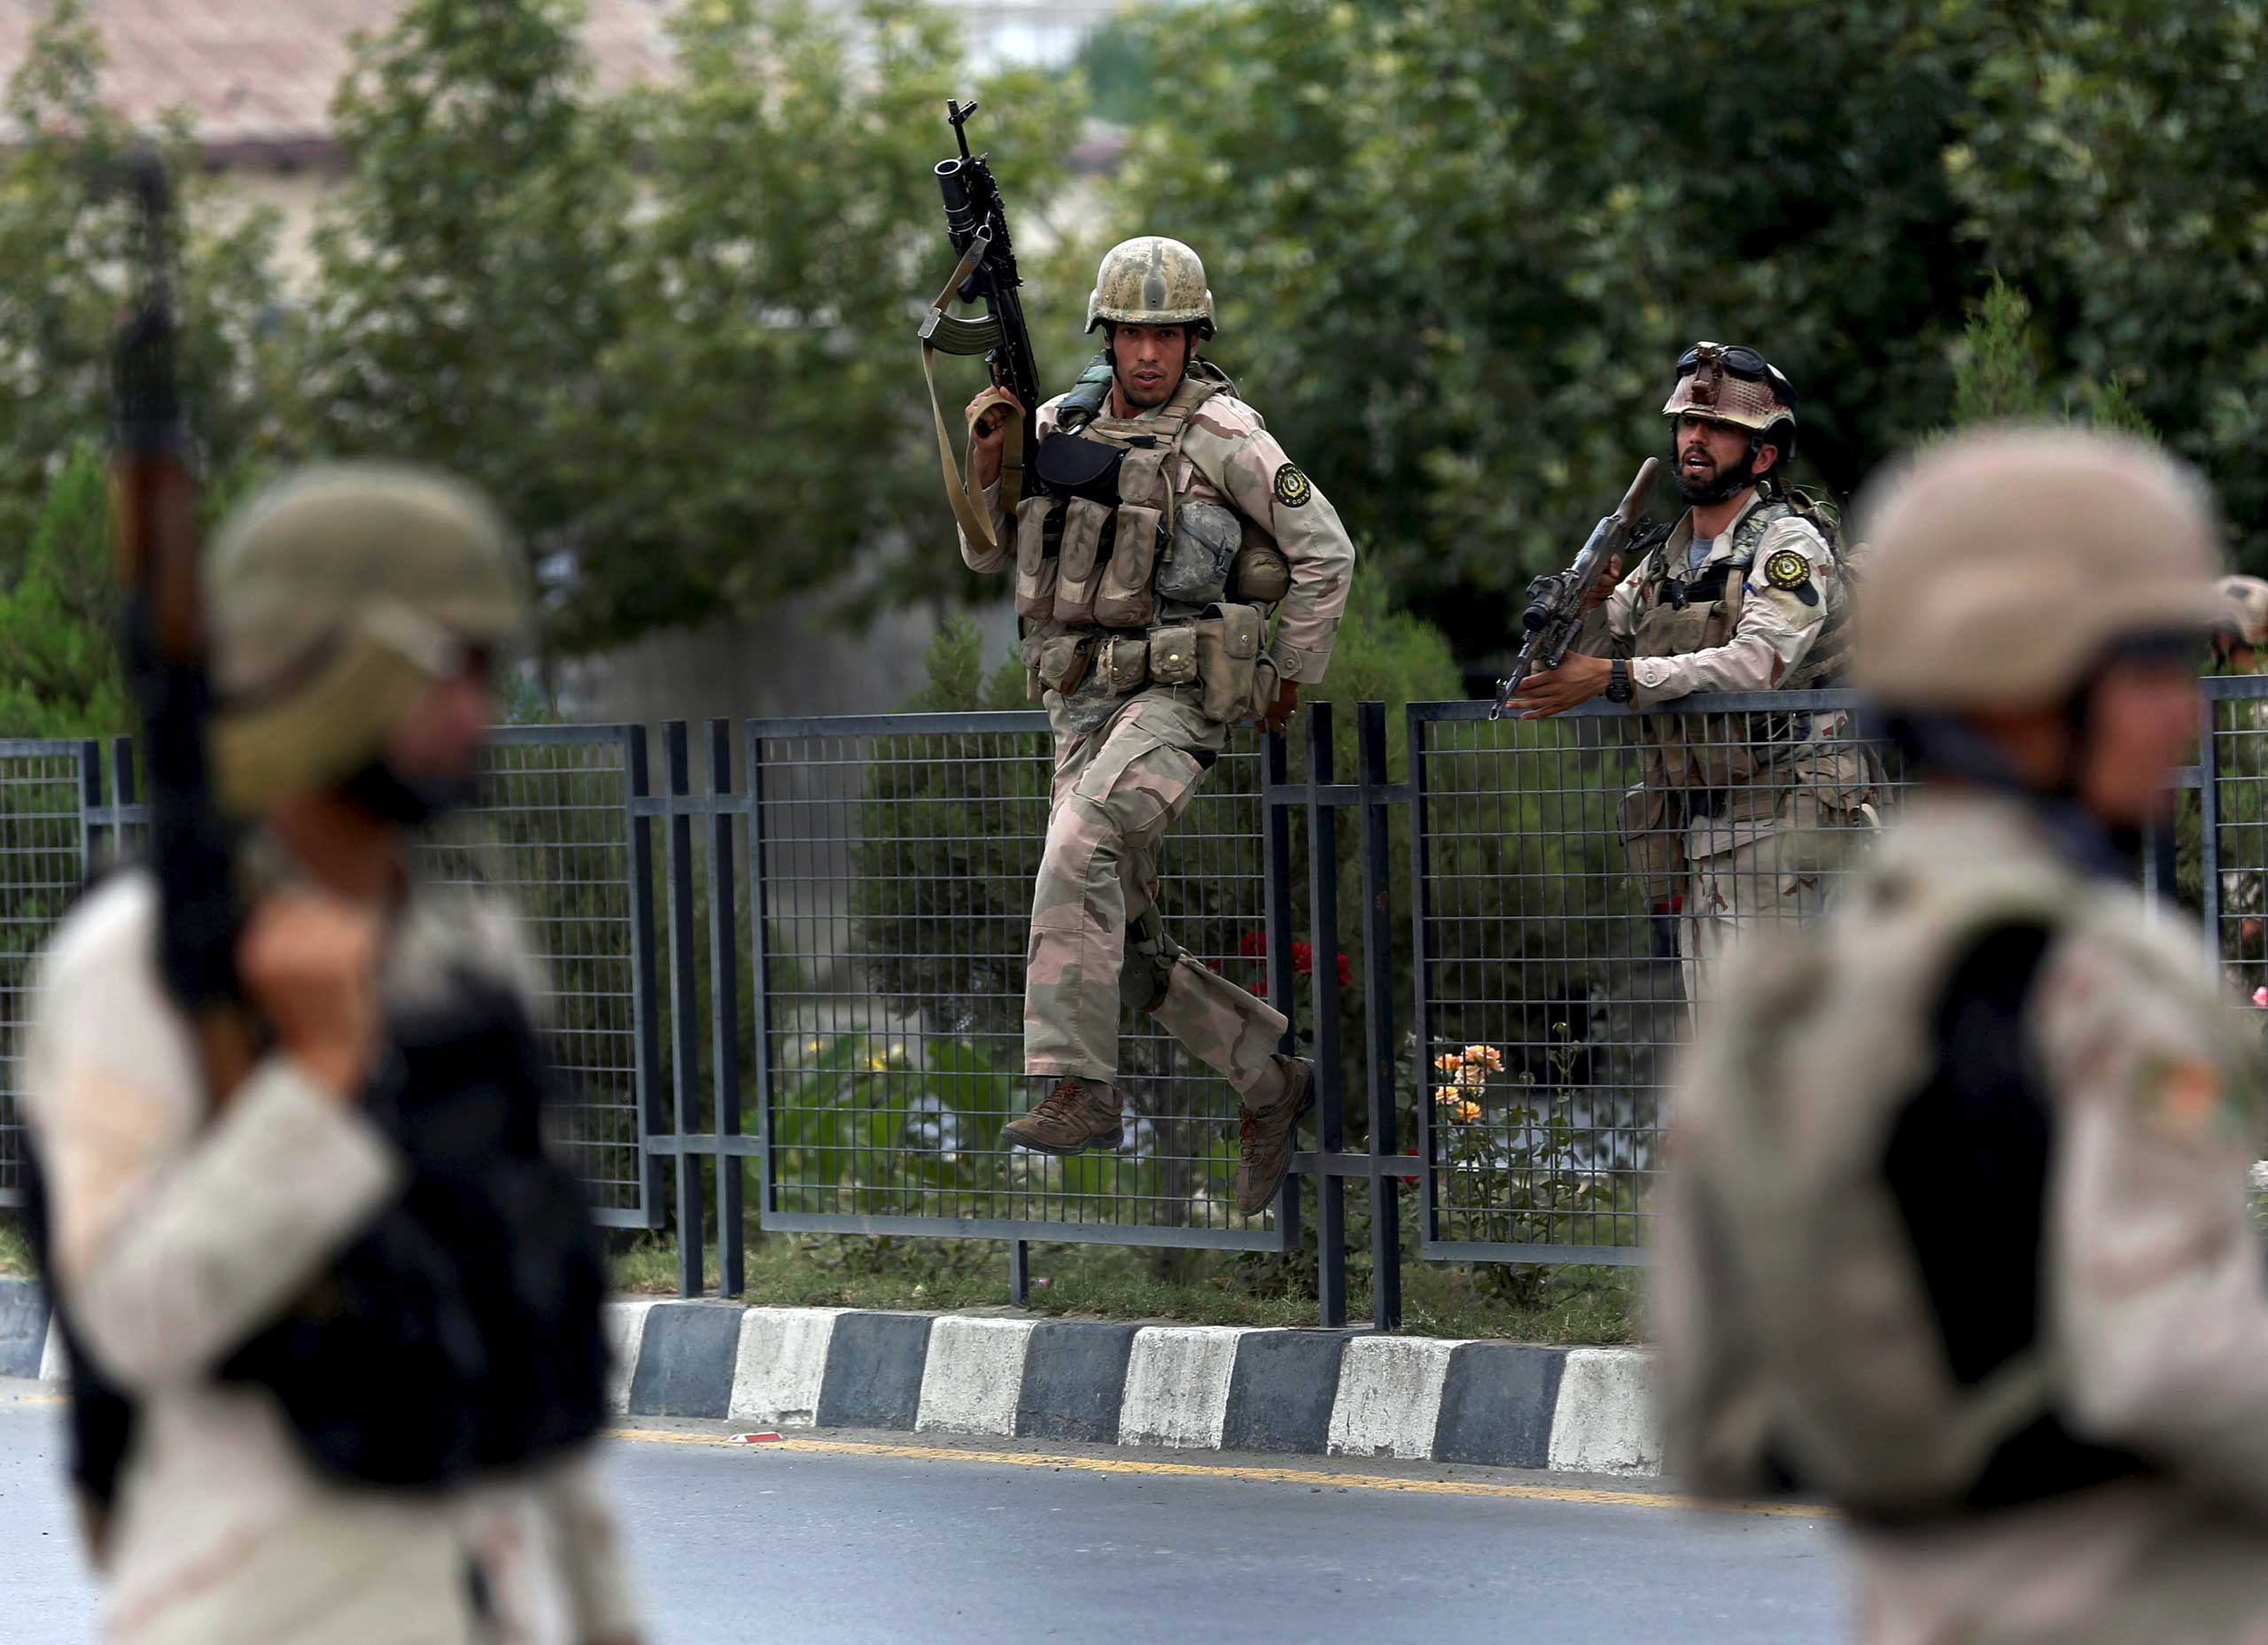 Members of Afghan security forces climb over a fence as they arrive at the site of an attack near the Afghan Parliament in Kabul, Afghanistan on June 22, 2015.